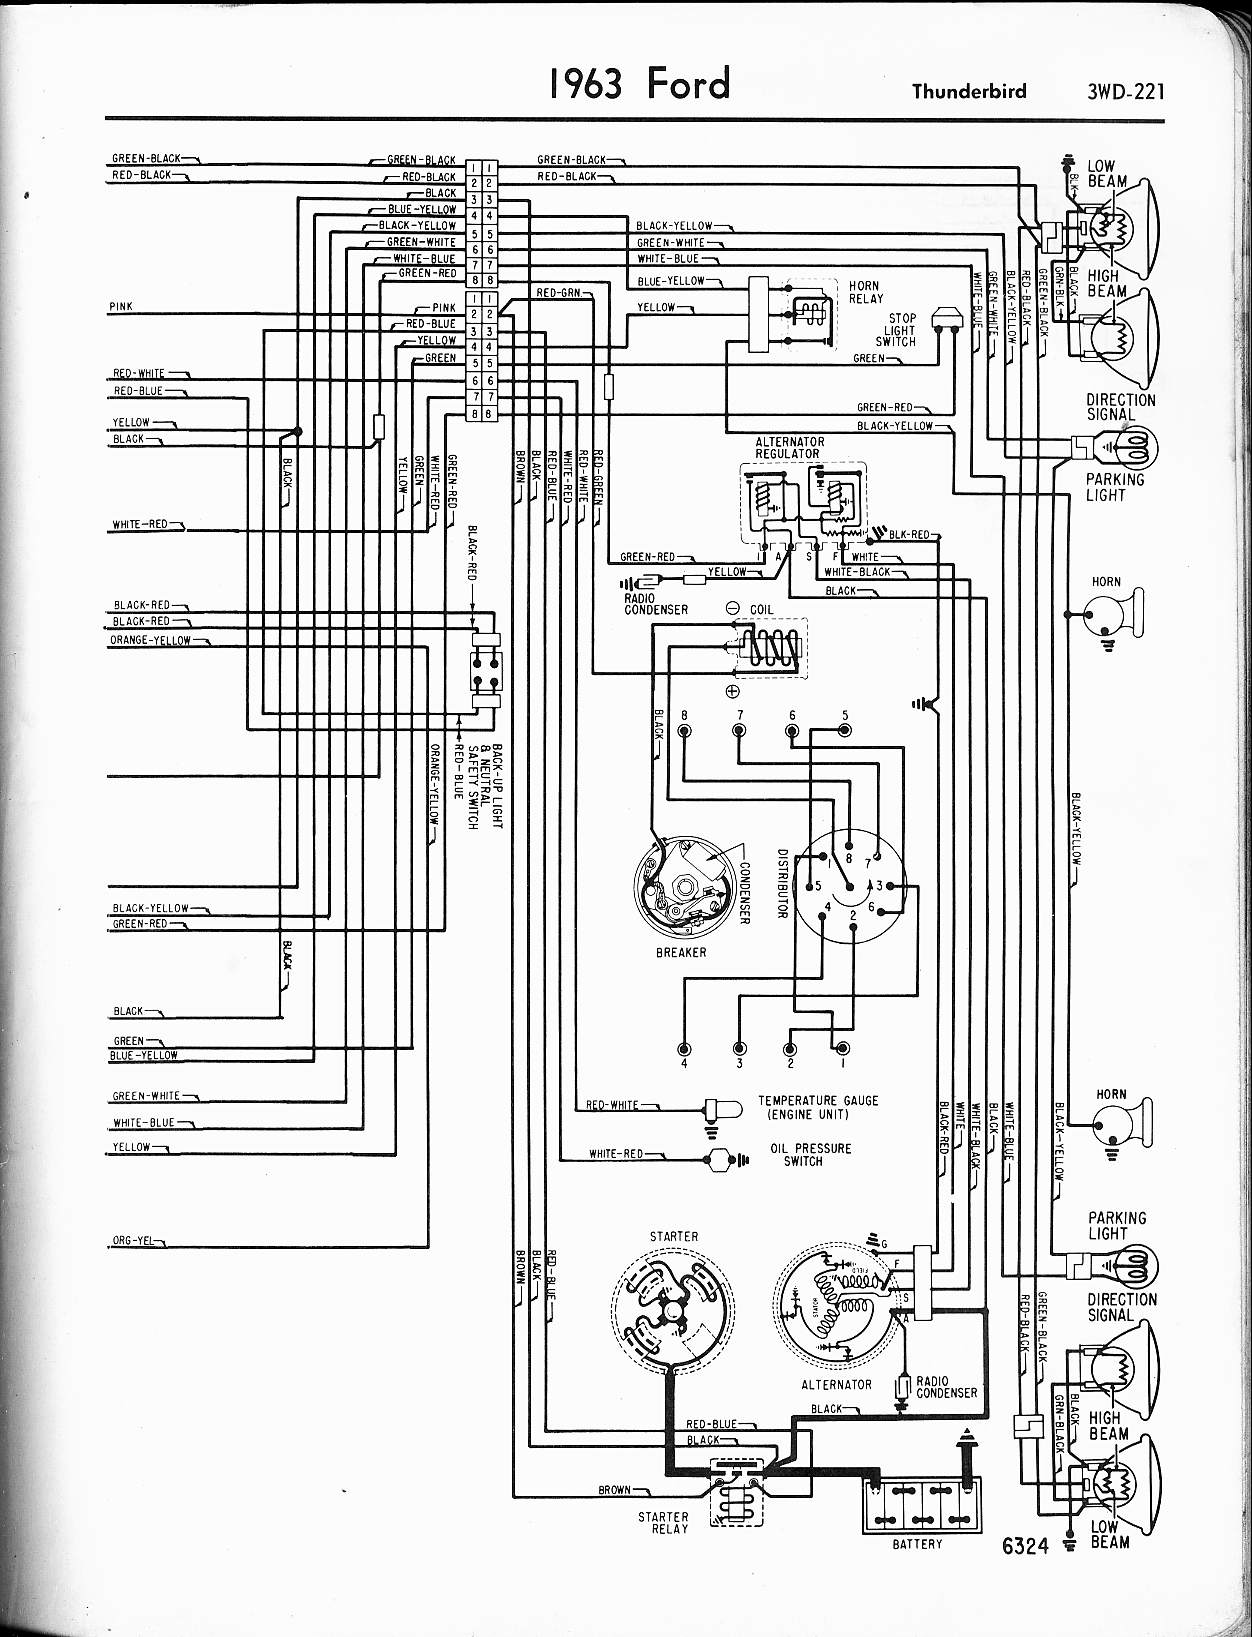 57 65 ford wiring diagrams 1963 thunderbird right